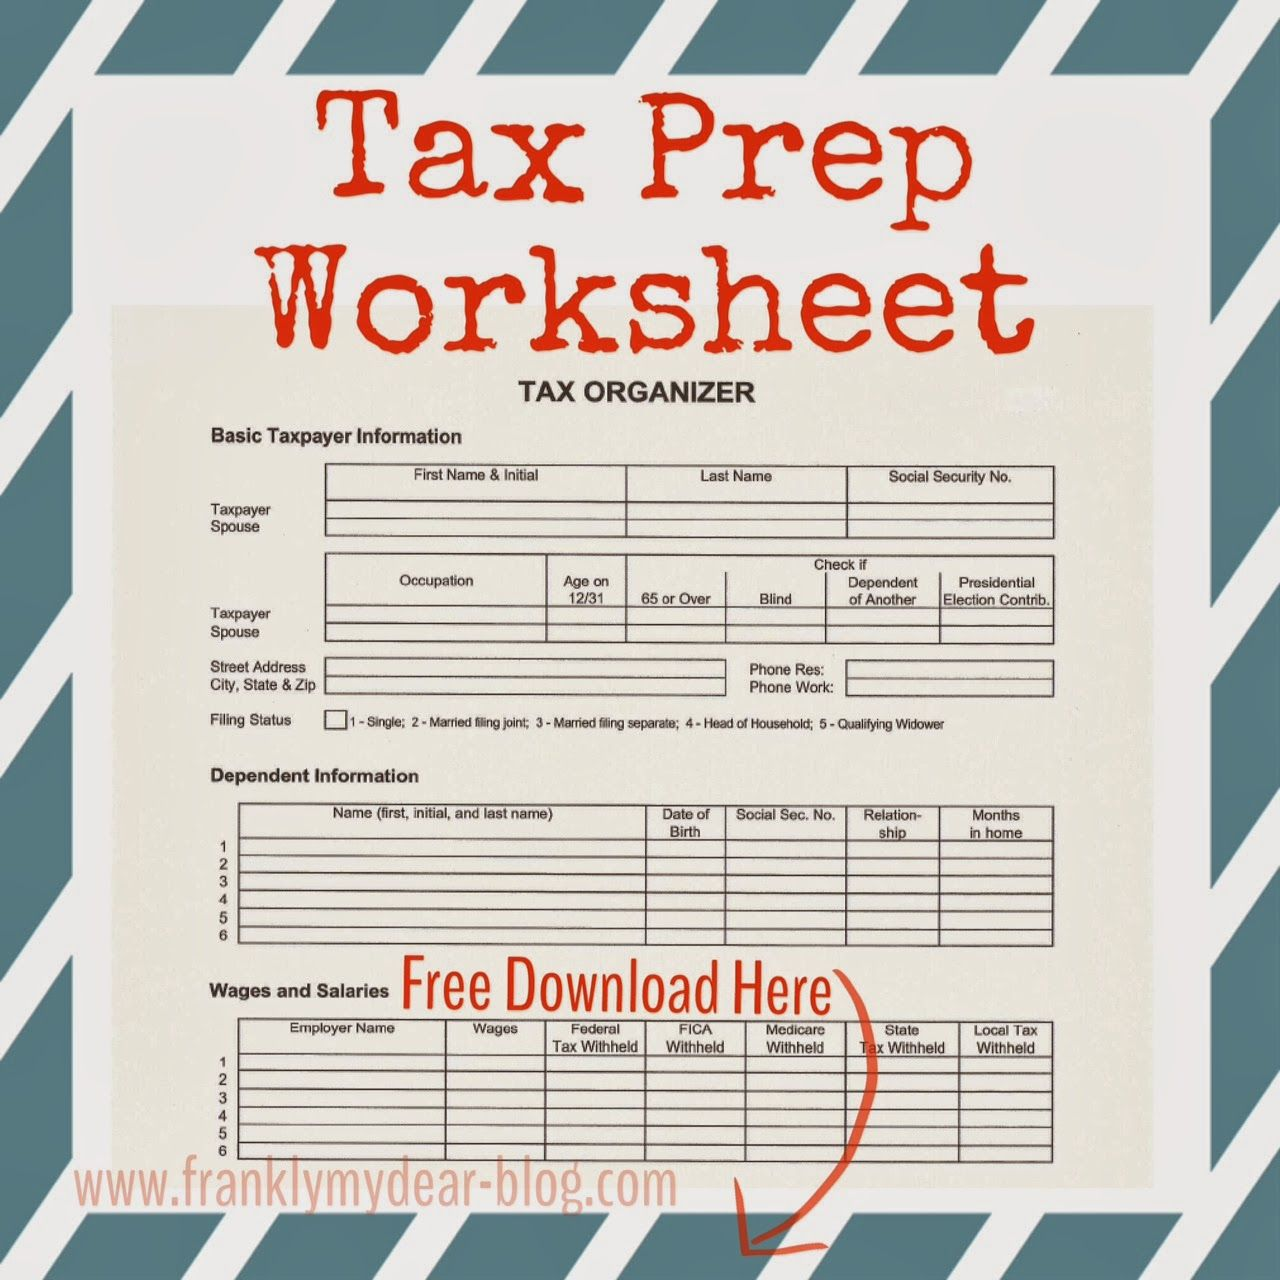 Tax Preparation Organizer Worksheet